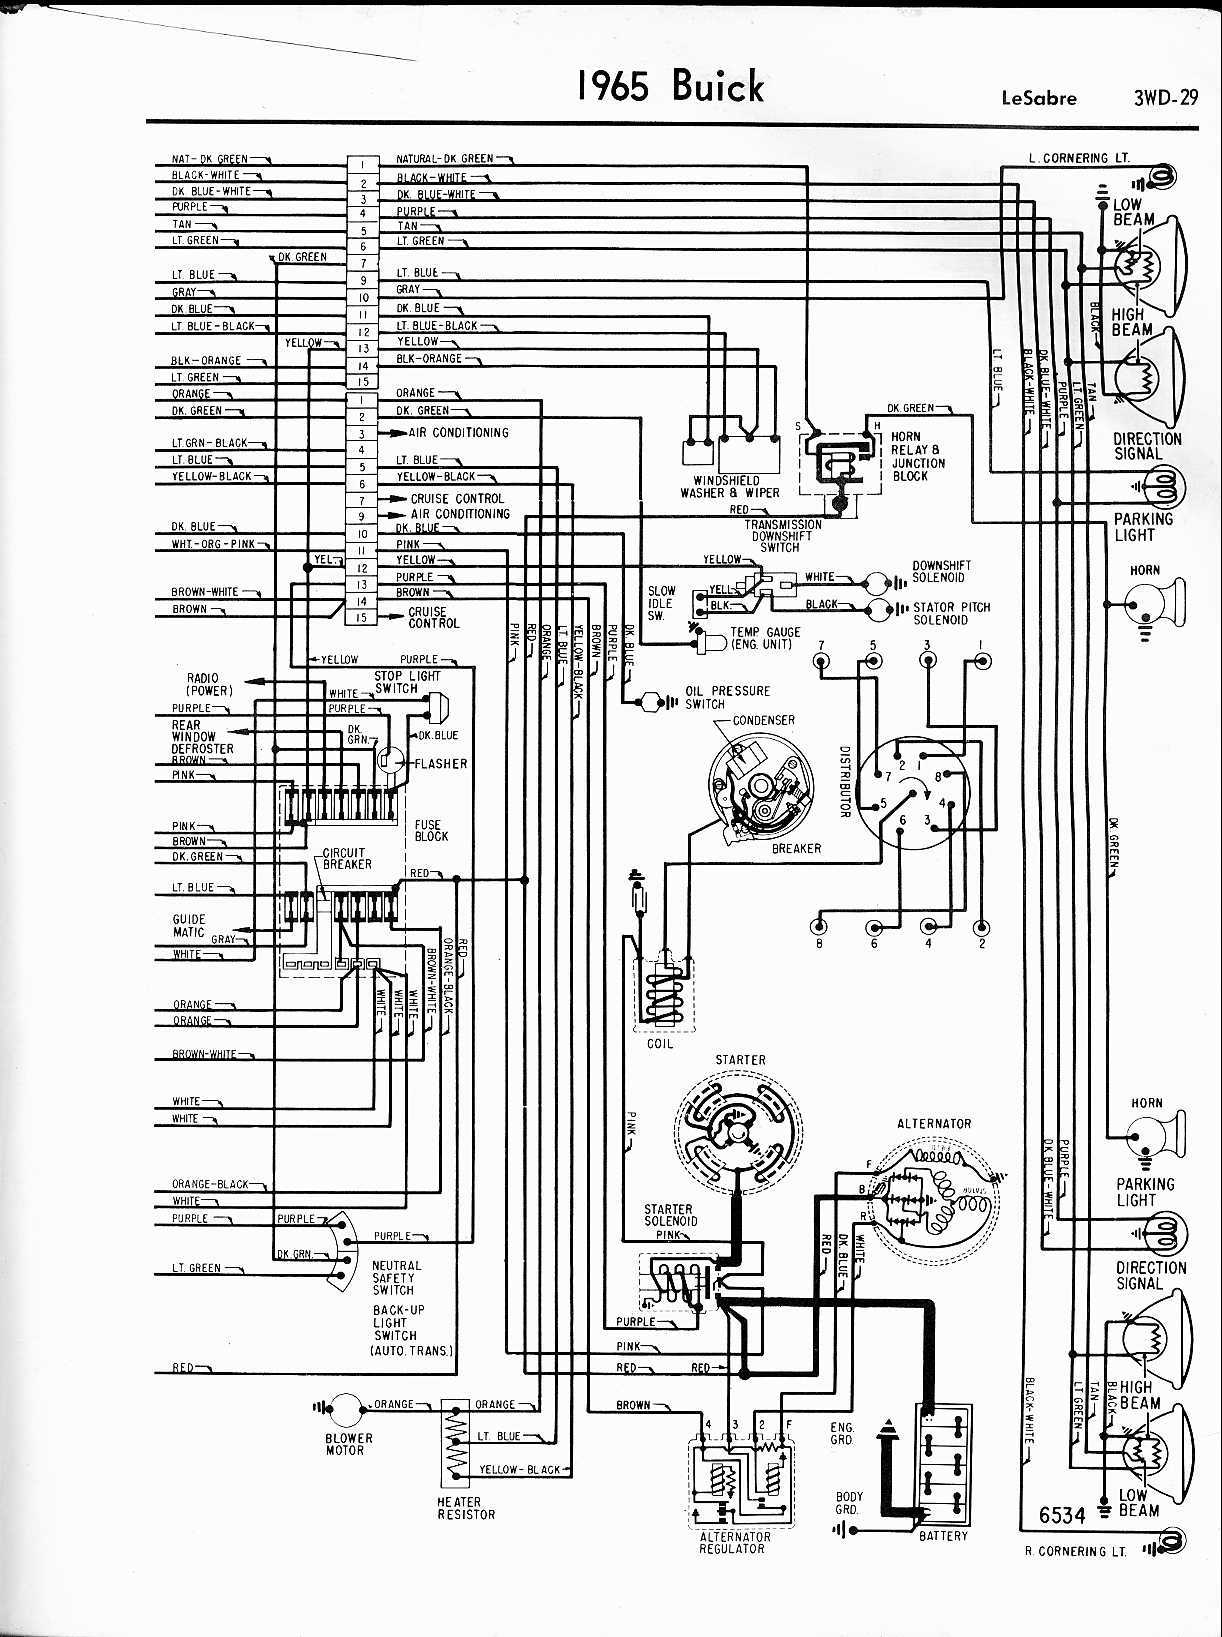 hight resolution of buick wiring diagrams 1957 1965 1997 buick lesabre ignition diagram 1990 buick lesabre coil wiring diagram